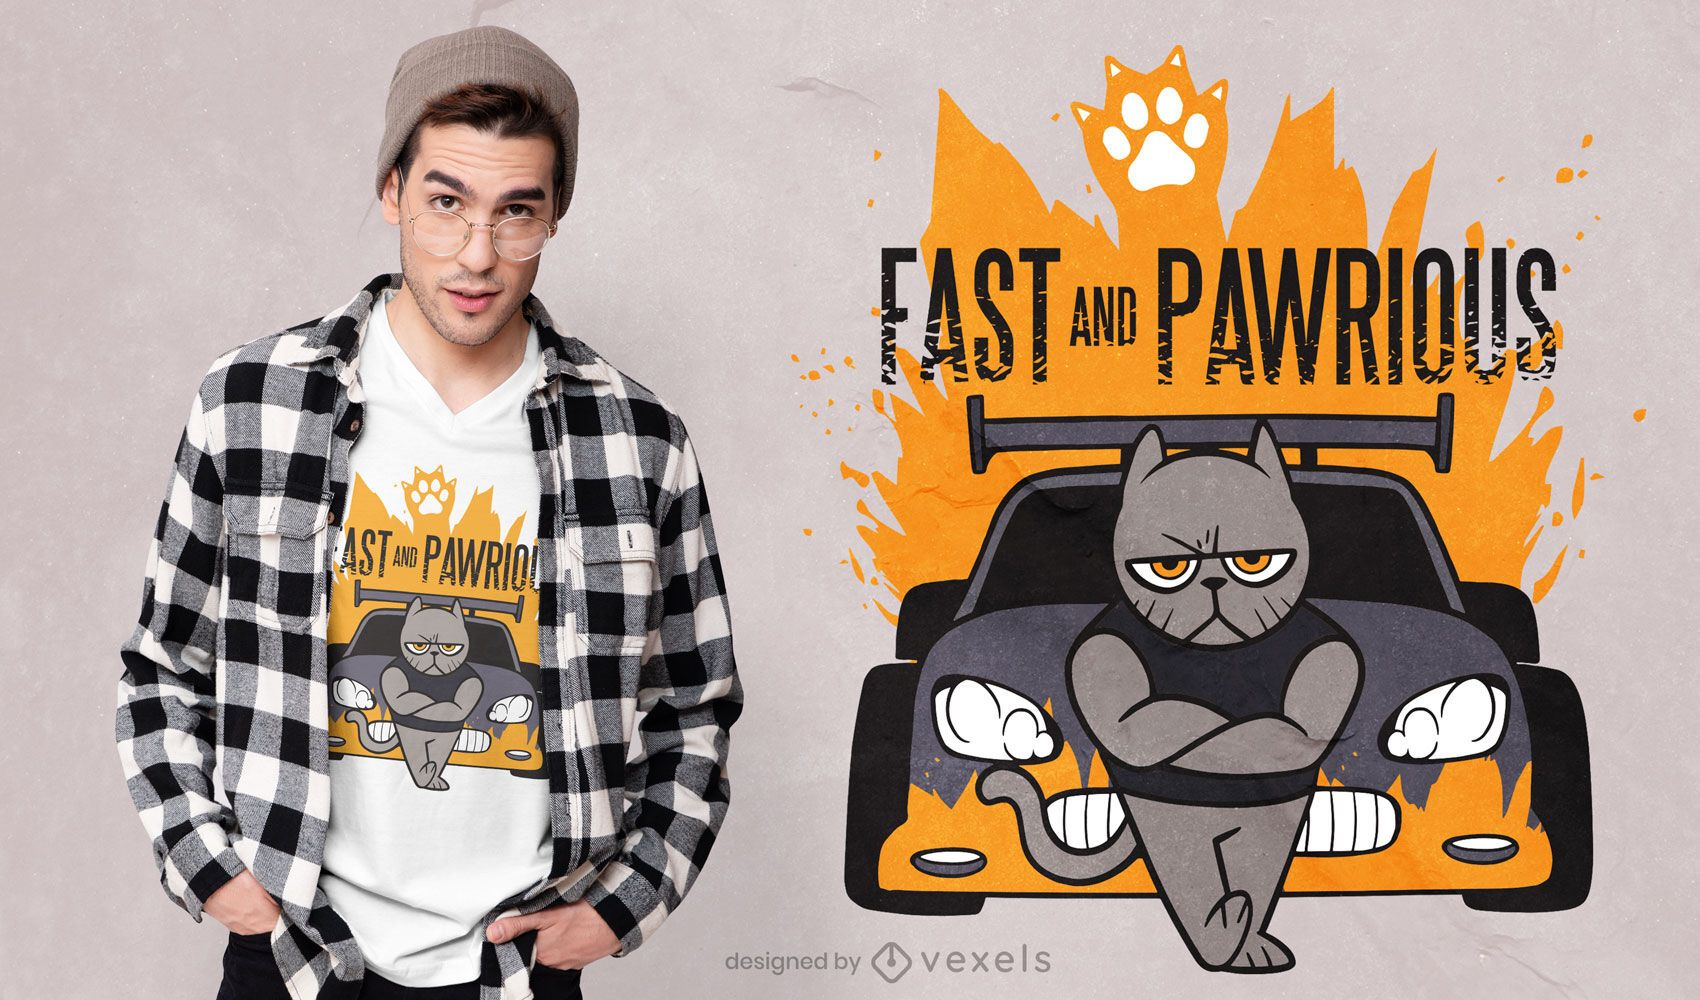 Fast and pawrious t-shirt design